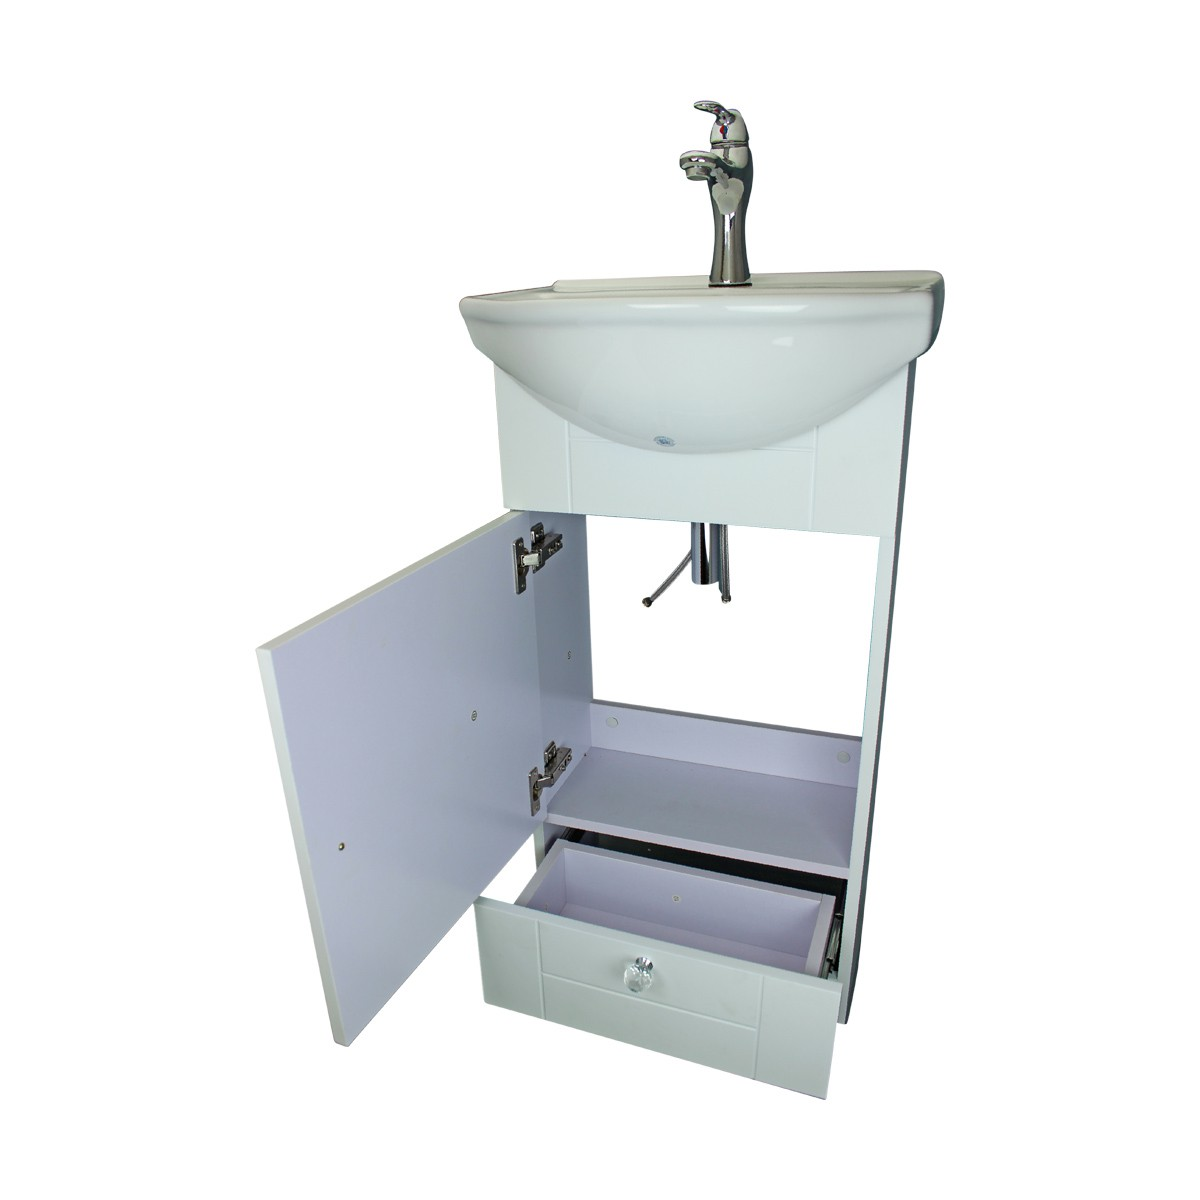 Elegant Small Wall Mount Bathroom Sink Of Small Mounted Vanity With Faucet